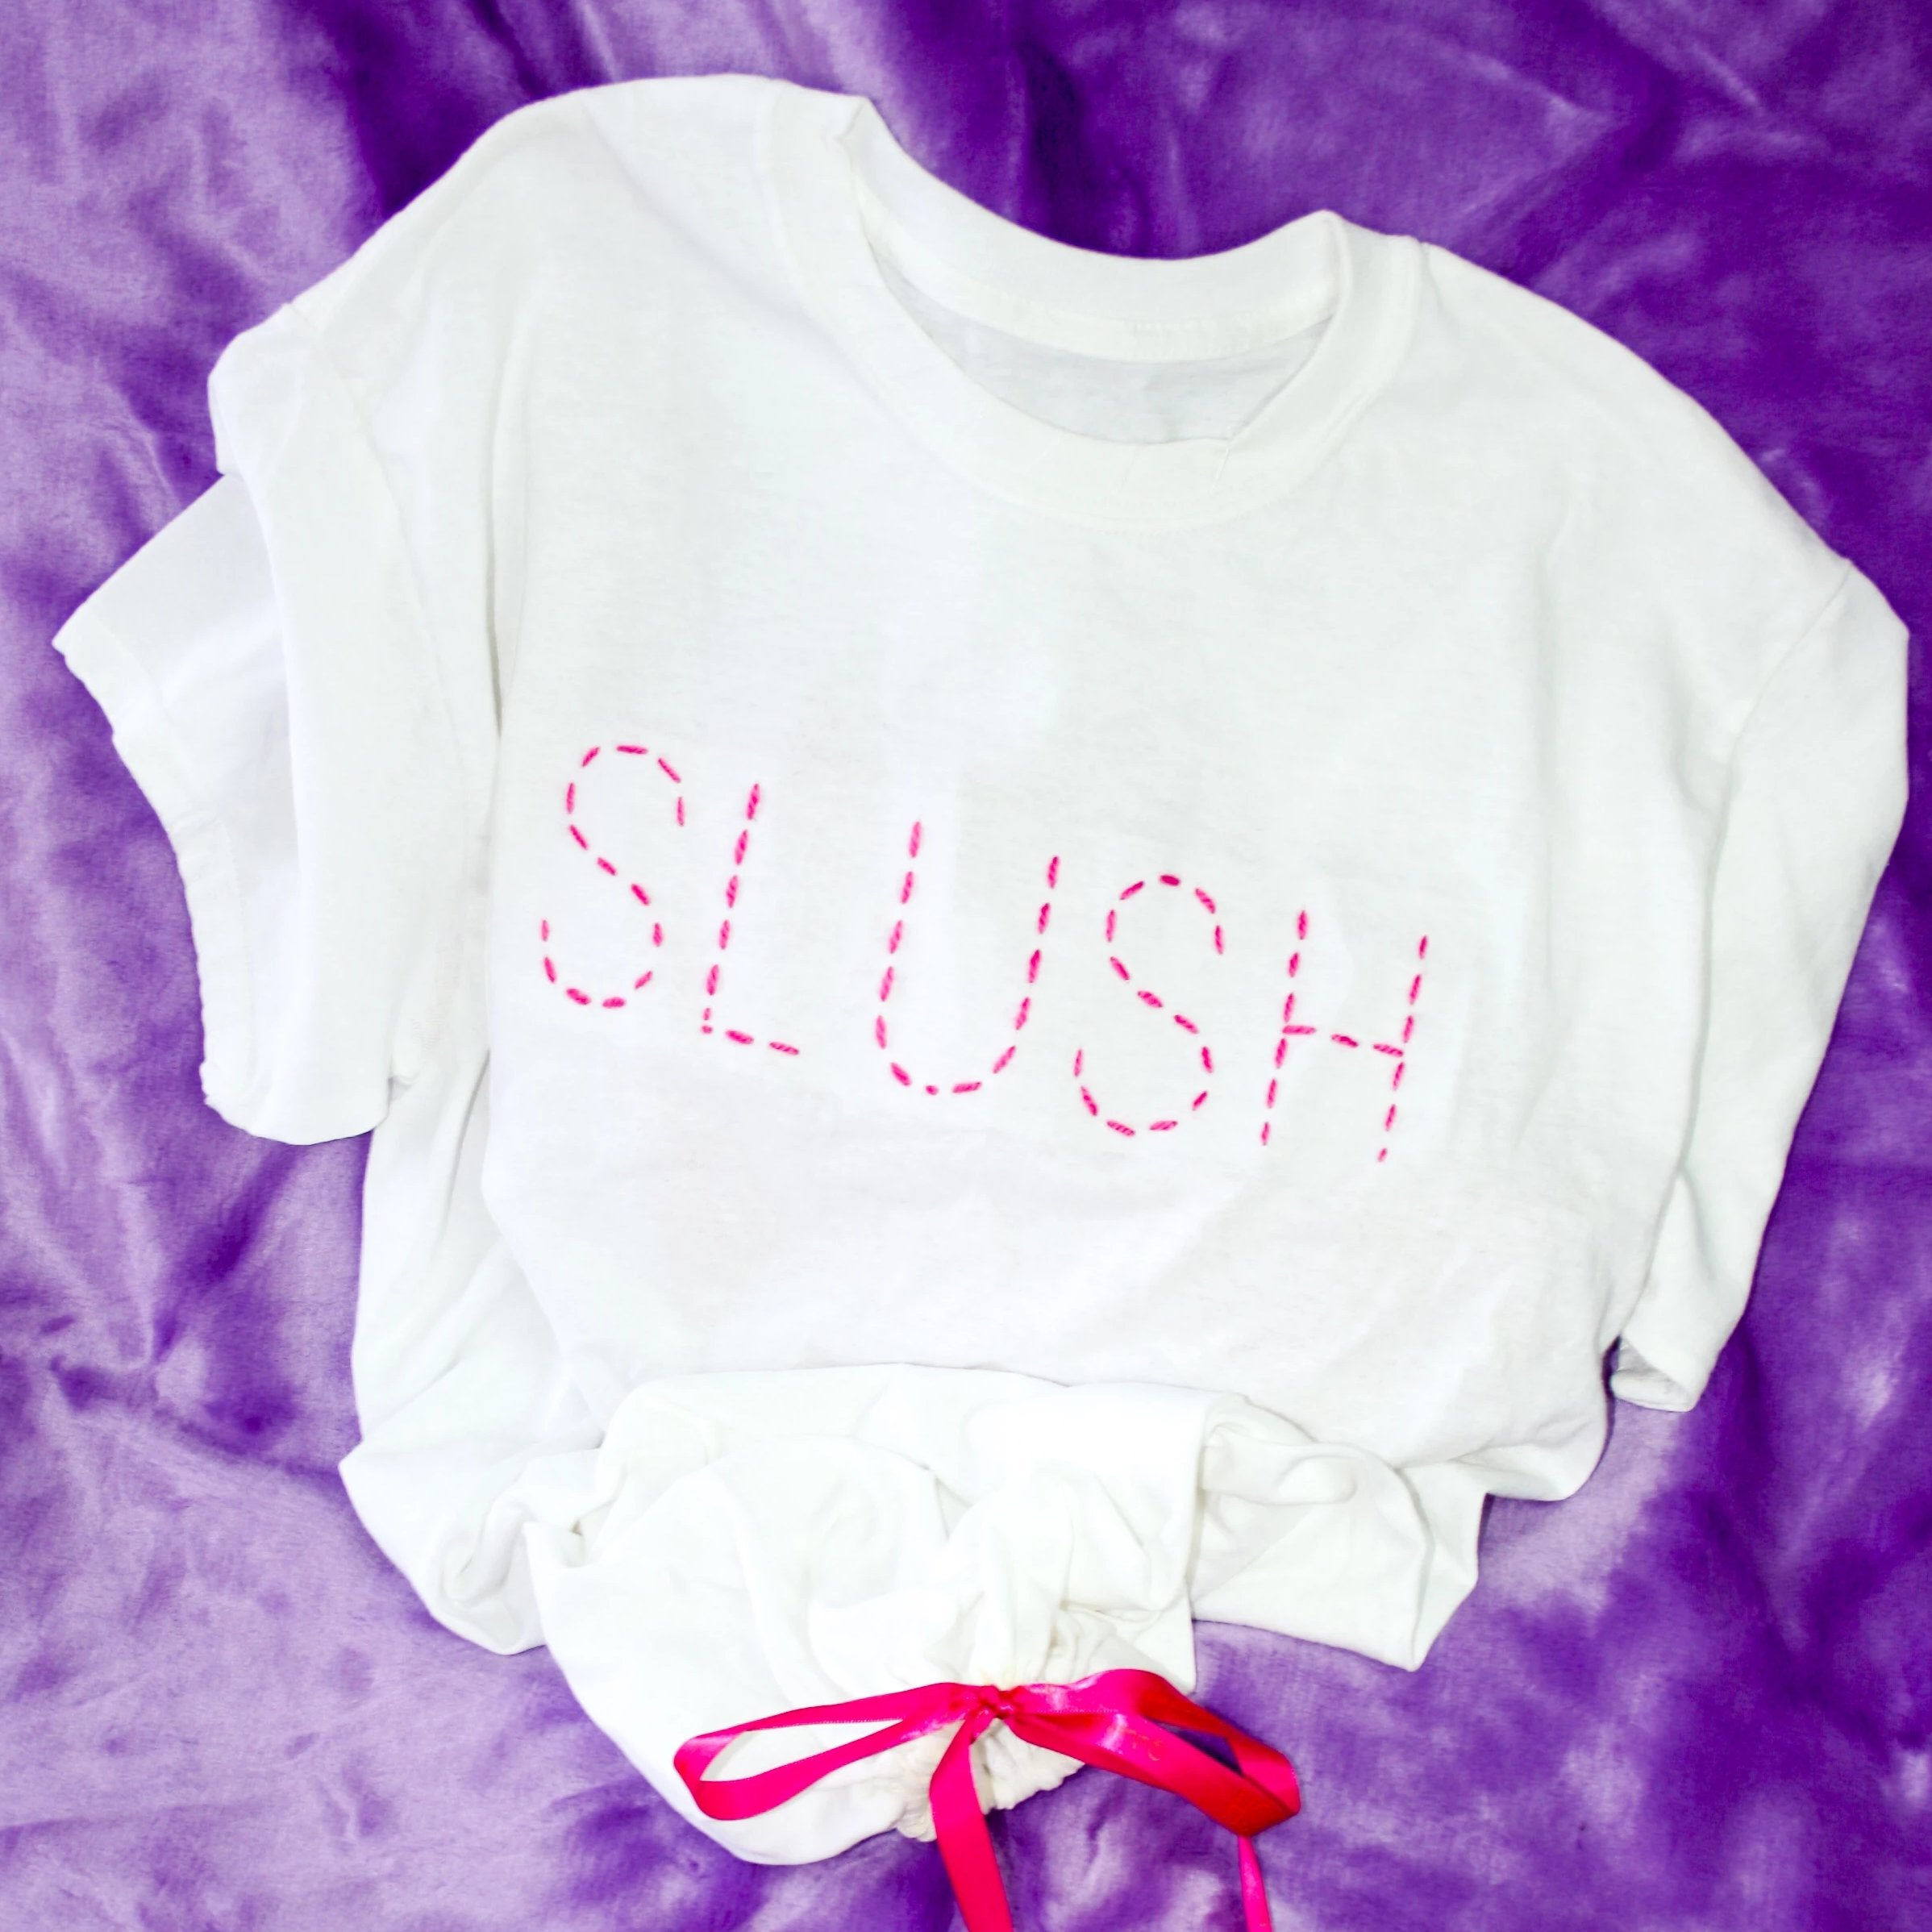 SLUSH T-SHIRT - DUST BAG